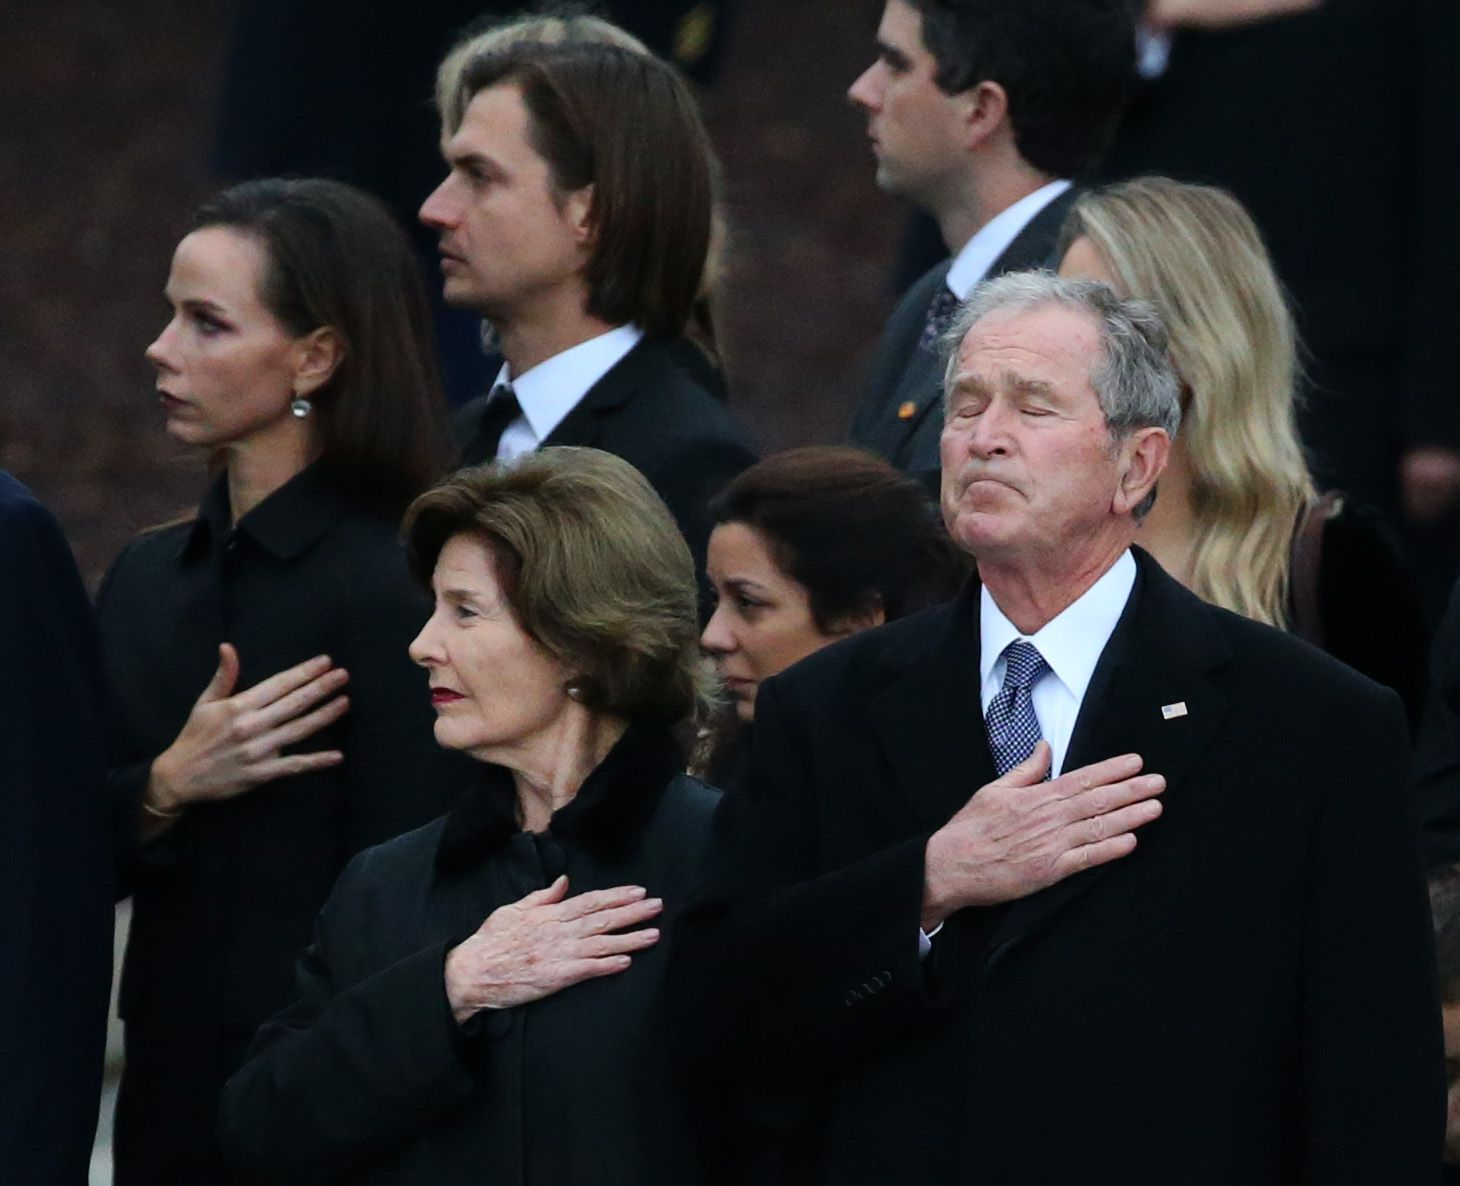 Former President George W. Bush reacts alongside his wife Laura Bush as the flag-draped casket of his father former President George H.W. Bush is carried by a joint services honor guard from the funeral train pulled by a custom-painted Union Pacific Locomotive 4141 to his final resting place at the George H.W. Bush Presidential Library Center on Texas A&M University campus in College Station, Texas on Thursday, Dec. 6, 2018. (Rose Baca/The Dallas Morning News)